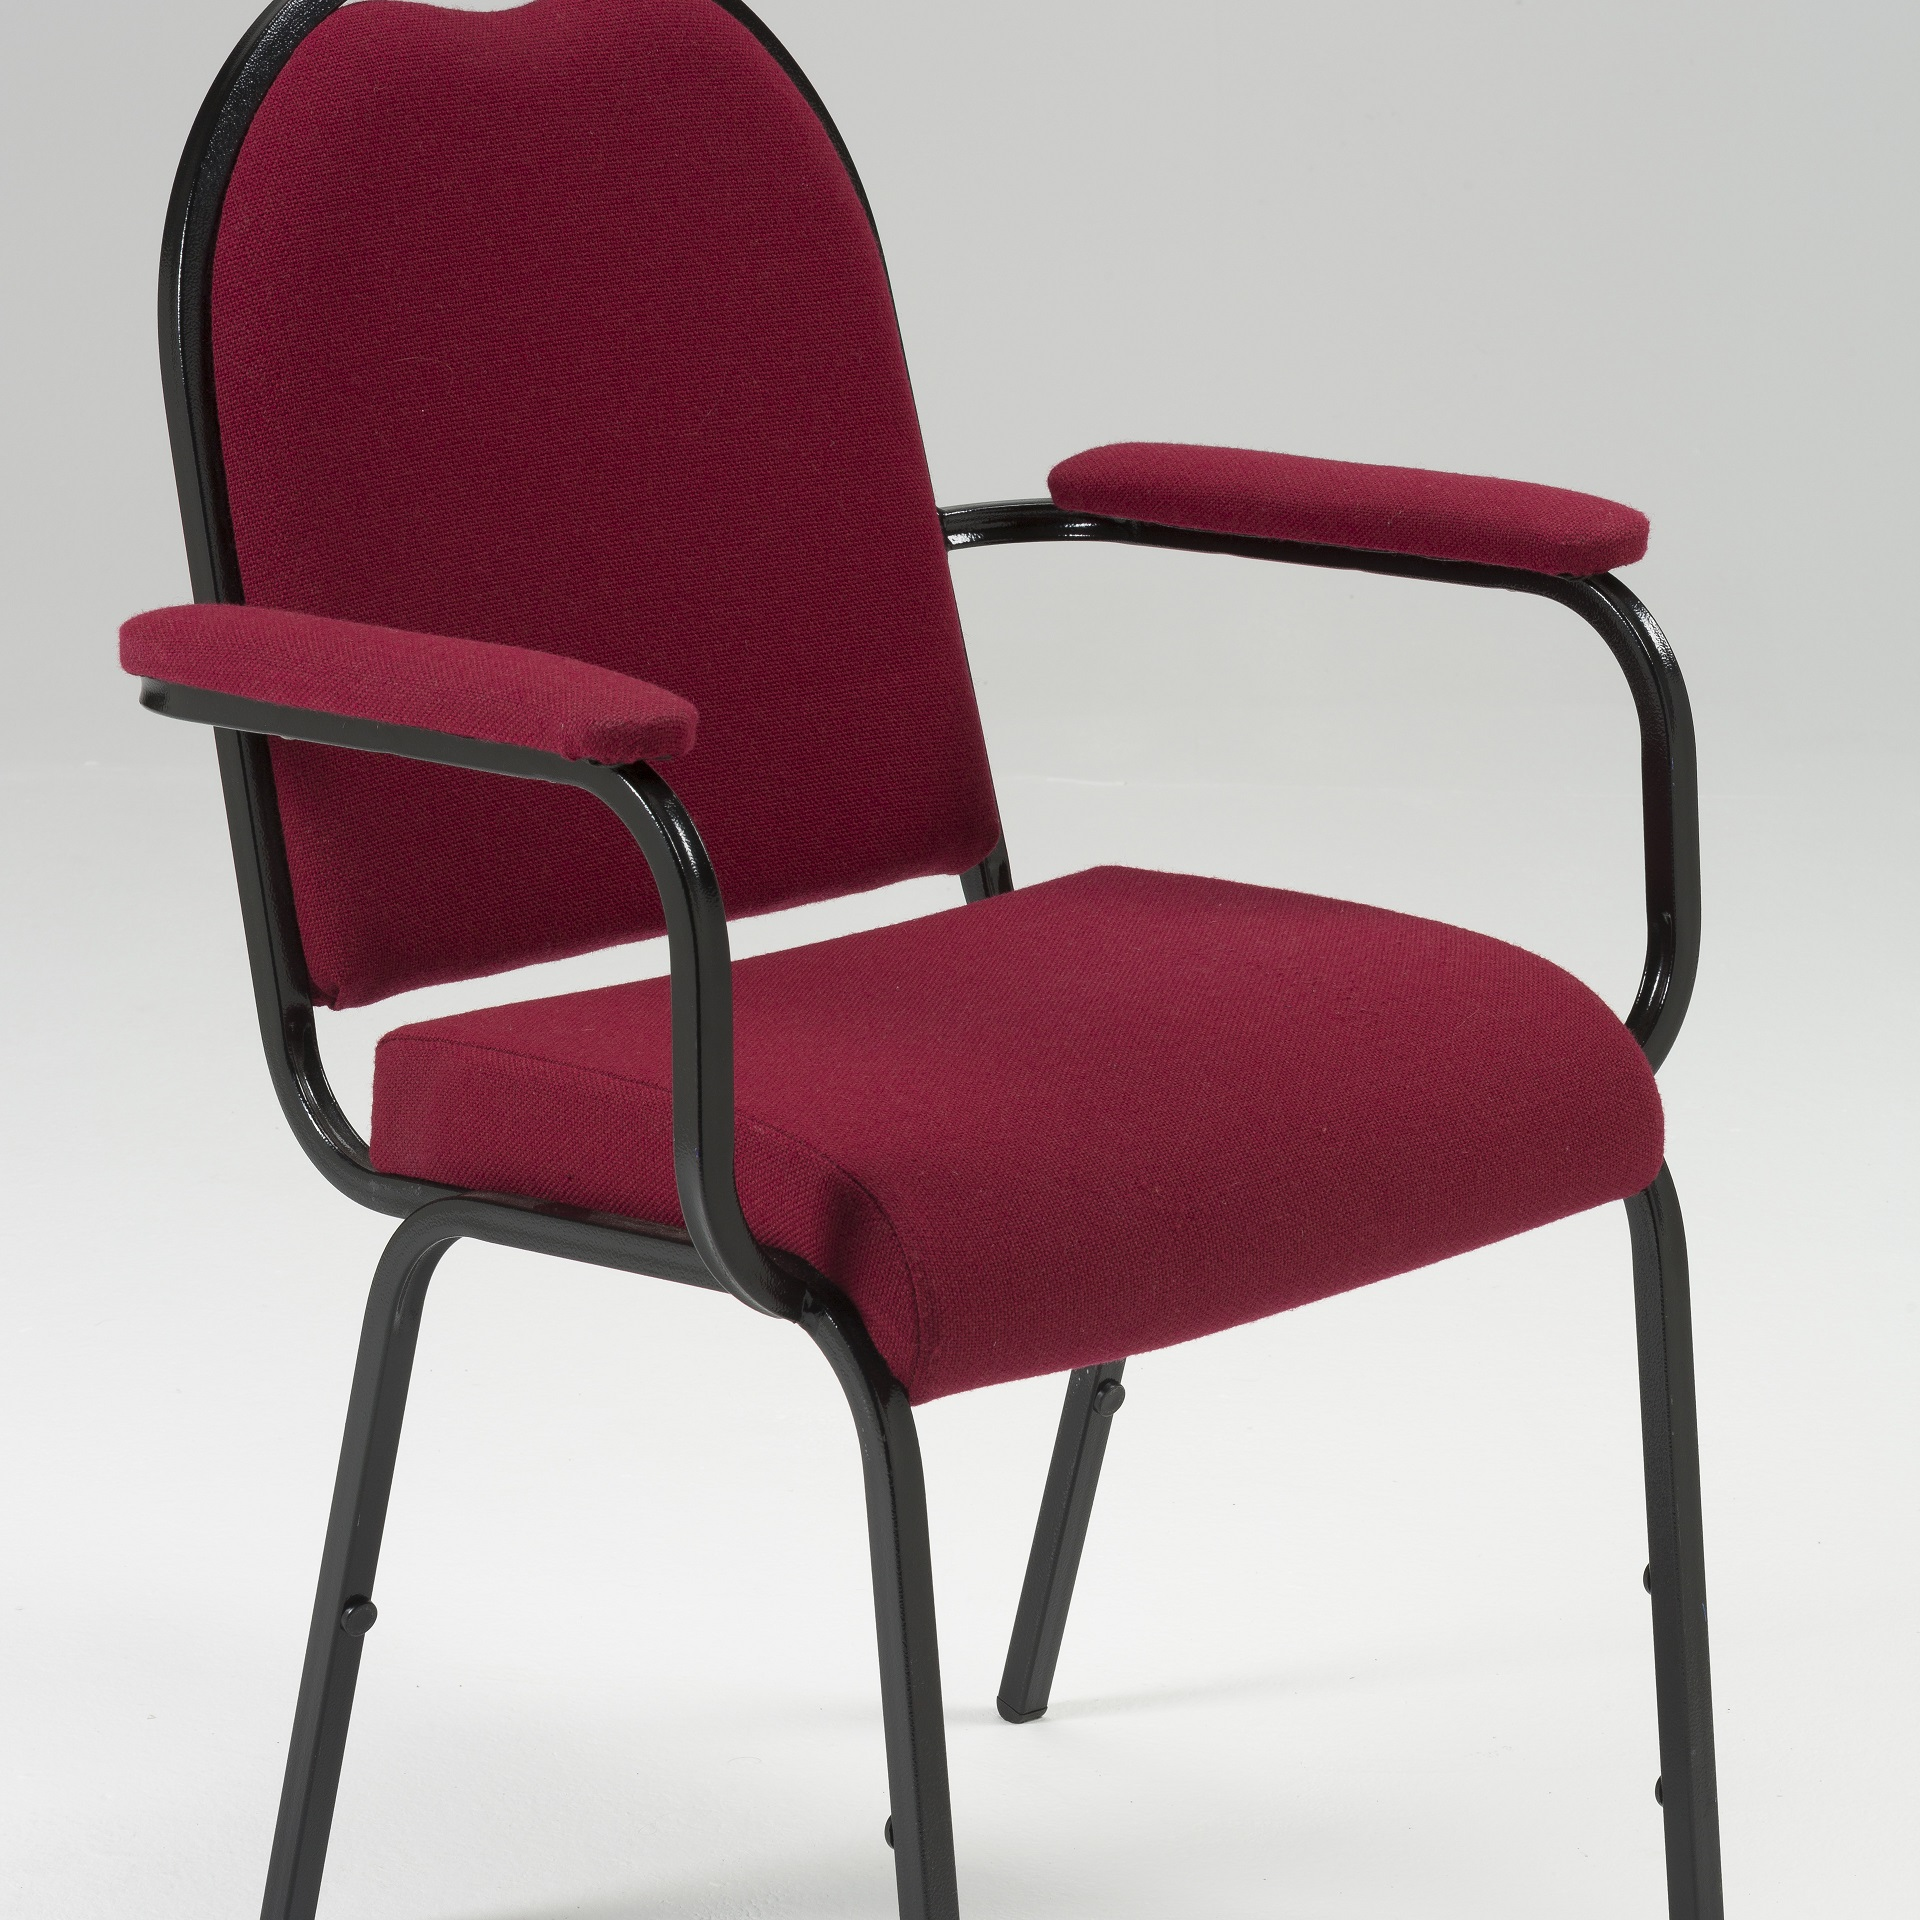 Deluxe Comfortable Stacking High Back Chair